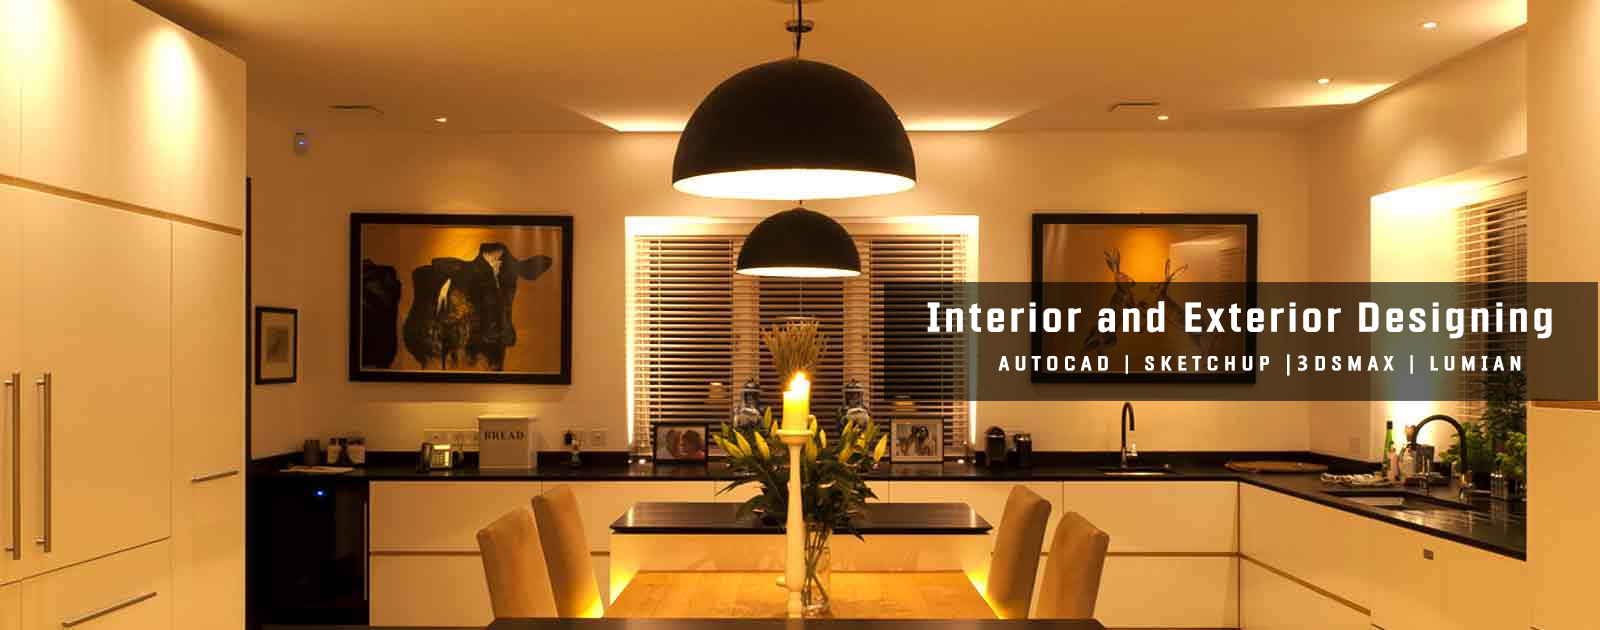 interior & exterior training in hyderabad